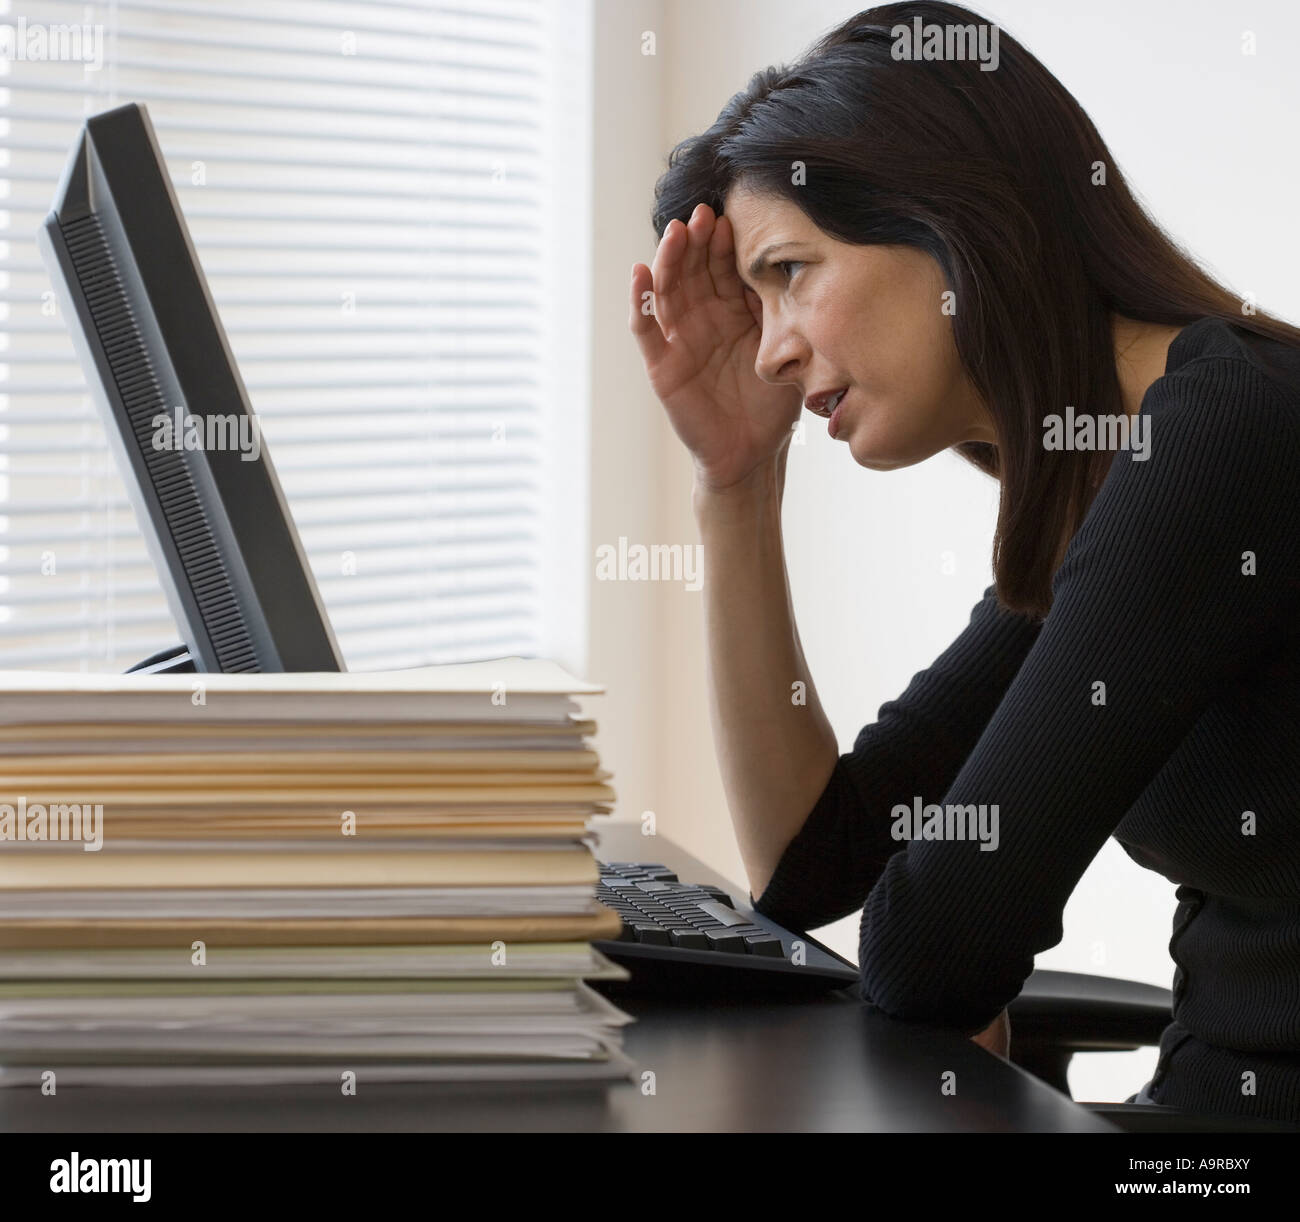 Businesswoman looking at computer Banque D'Images